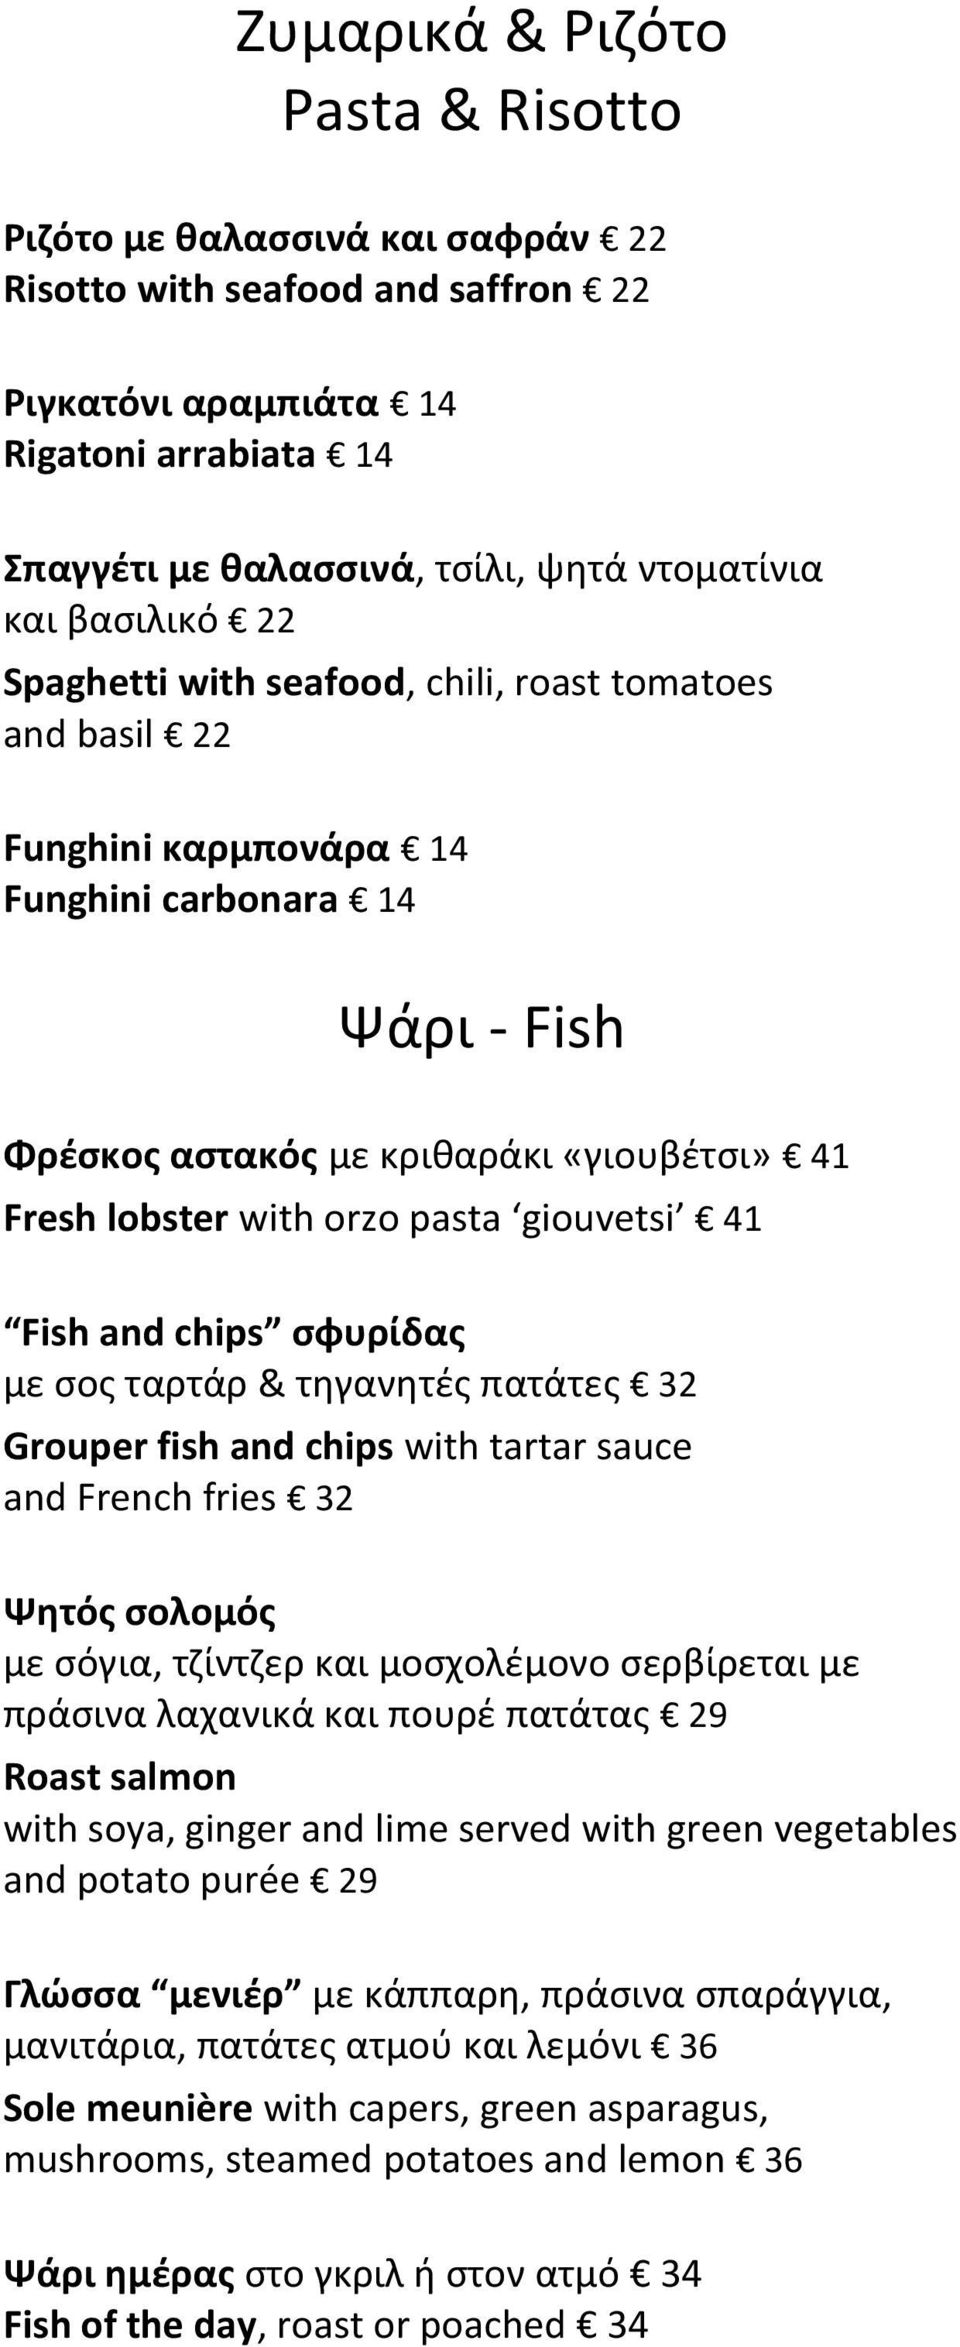 pasta giouvetsi 41 Fish and chips σφυρίδας με σος ταρτάρ & τηγανητές πατάτες 32 Grouper fish and chips with tartar sauce and French fries 32 Ψητός σολομός με σόγια, τζίντζερ και μοσχολέμονο